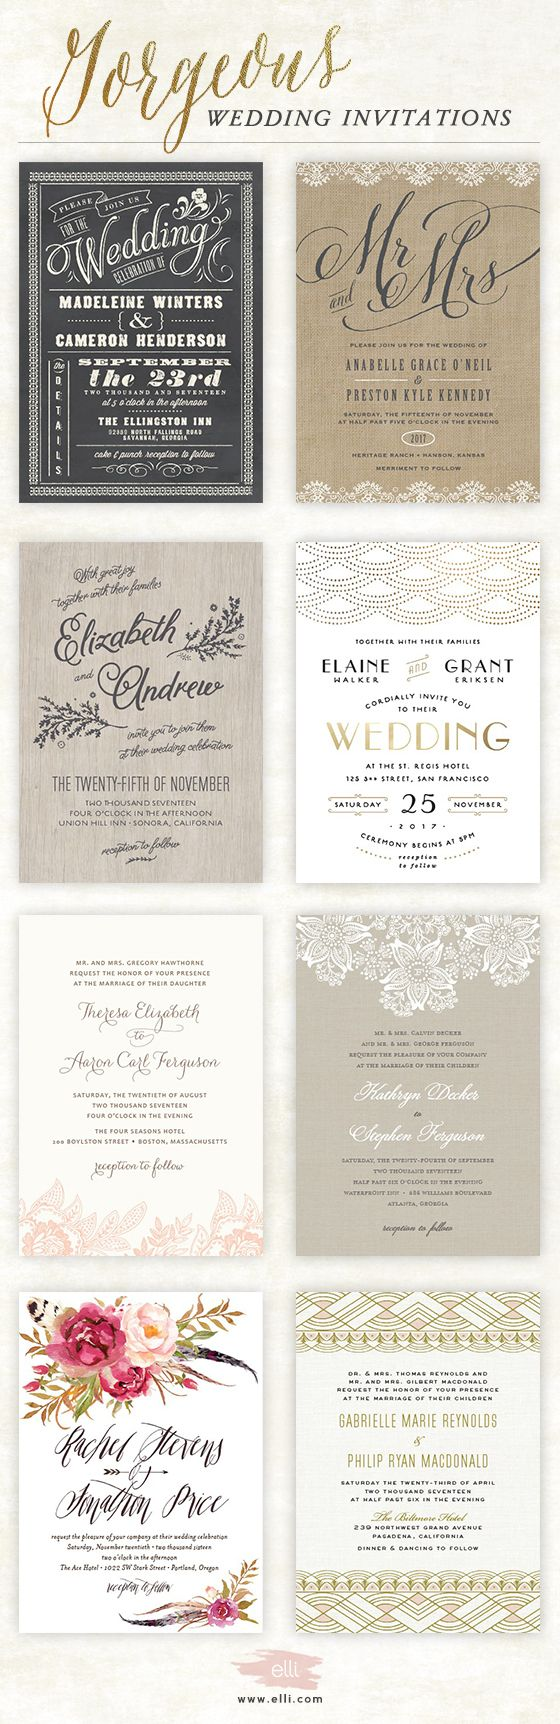 Find hundreds of gorgeous customizable wedding invitations for your